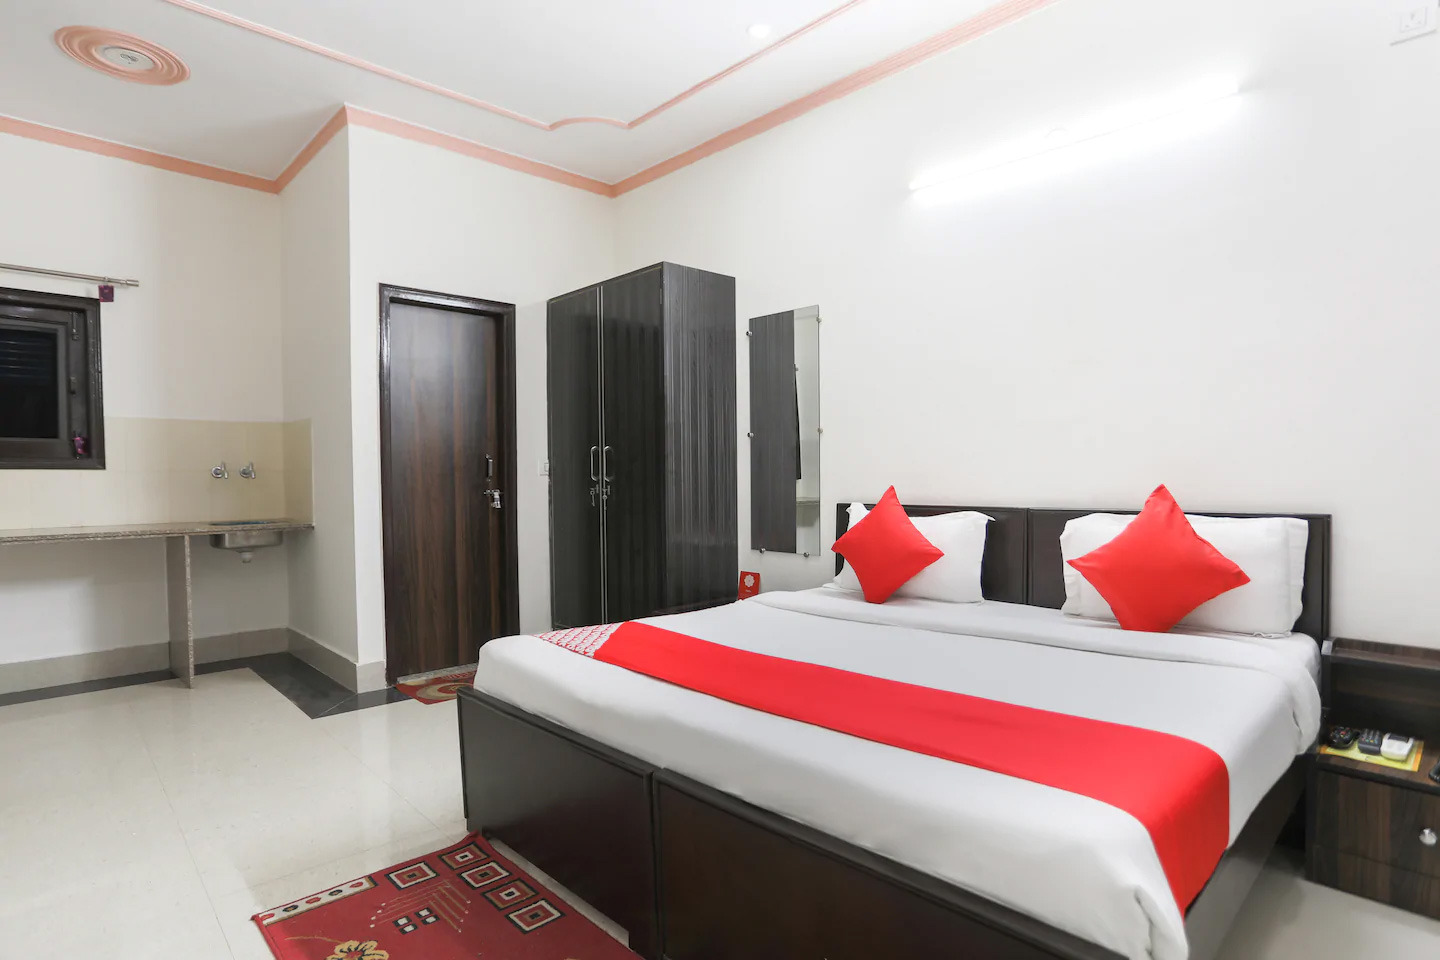 Guest house in Gurgaon, guest house near medanta medicity, Budget guest house in Gurgaon Delhi NCR, cheap guest house in Gurgaon